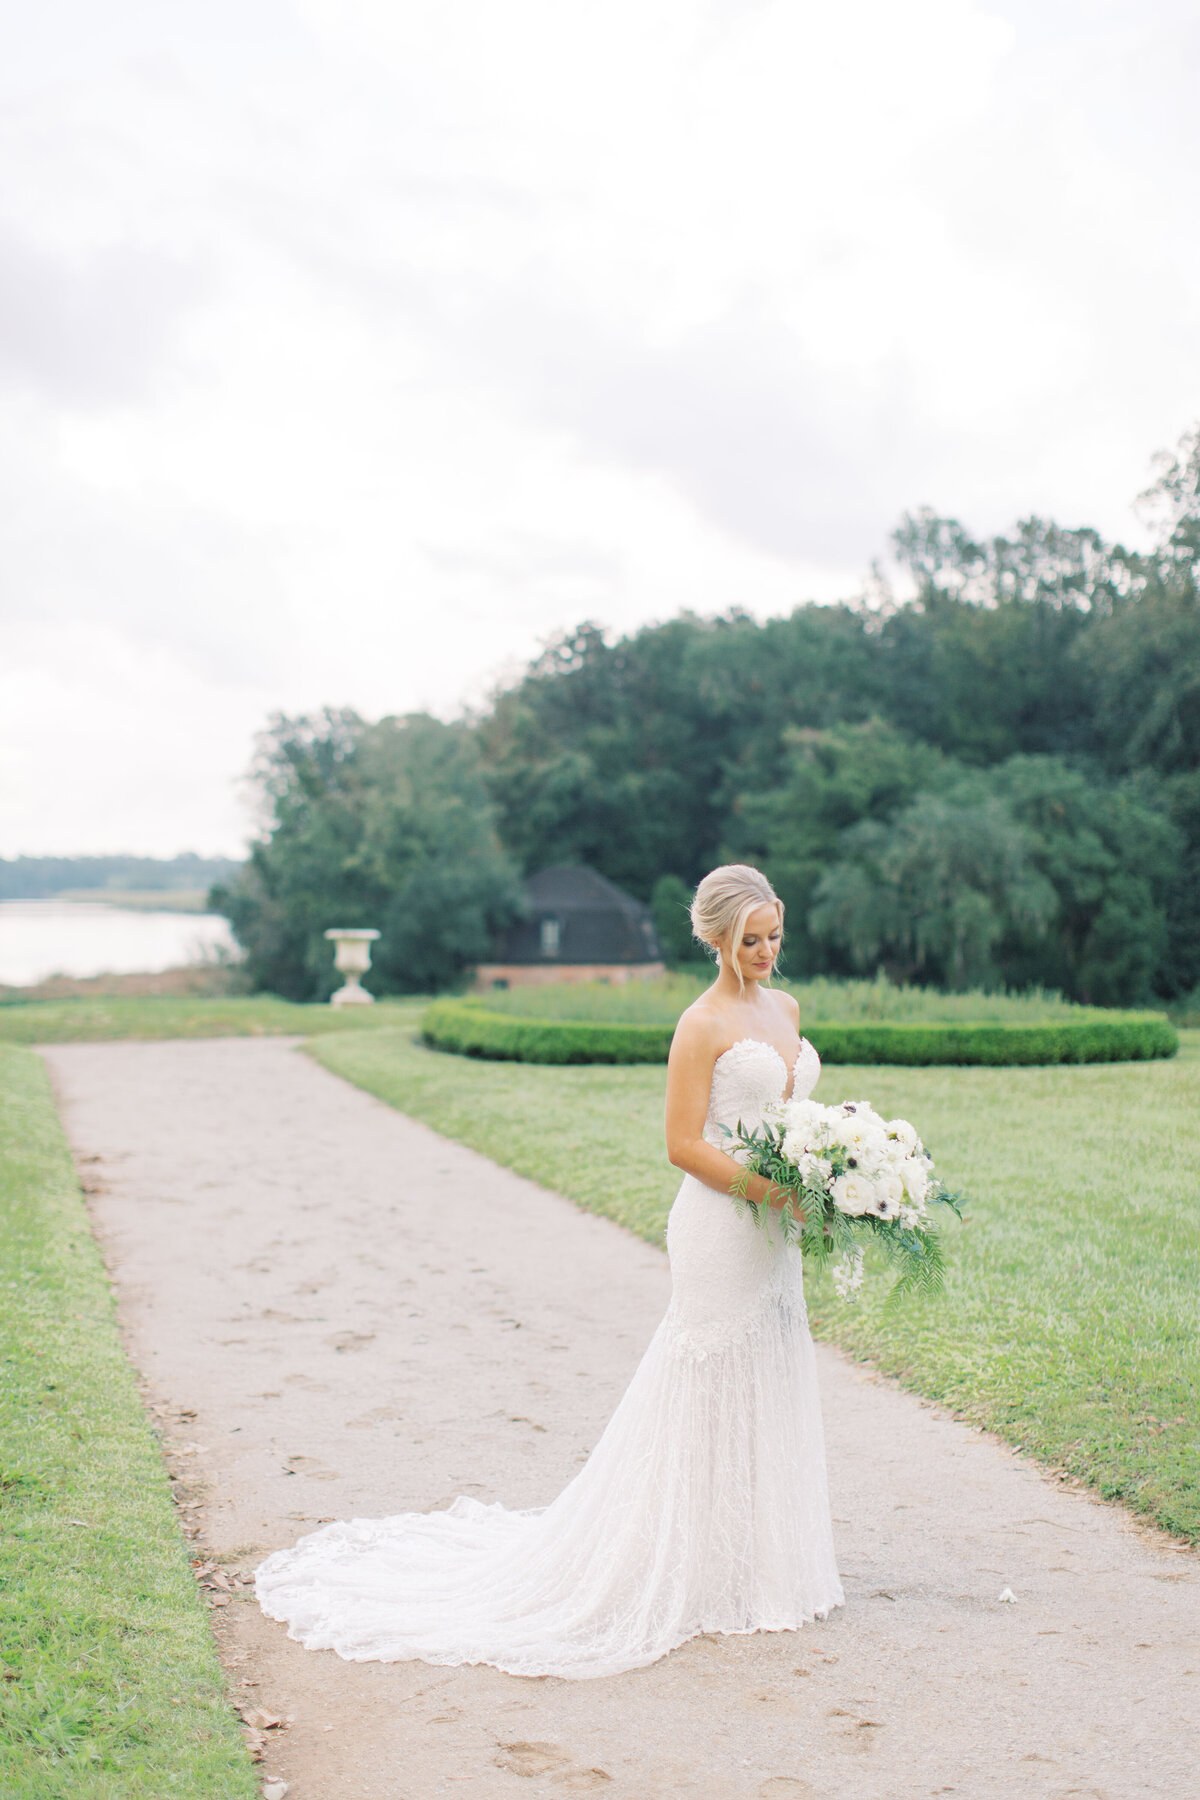 Melton_Wedding__Middleton_Place_Plantation_Charleston_South_Carolina_Jacksonville_Florida_Devon_Donnahoo_Photography__0296